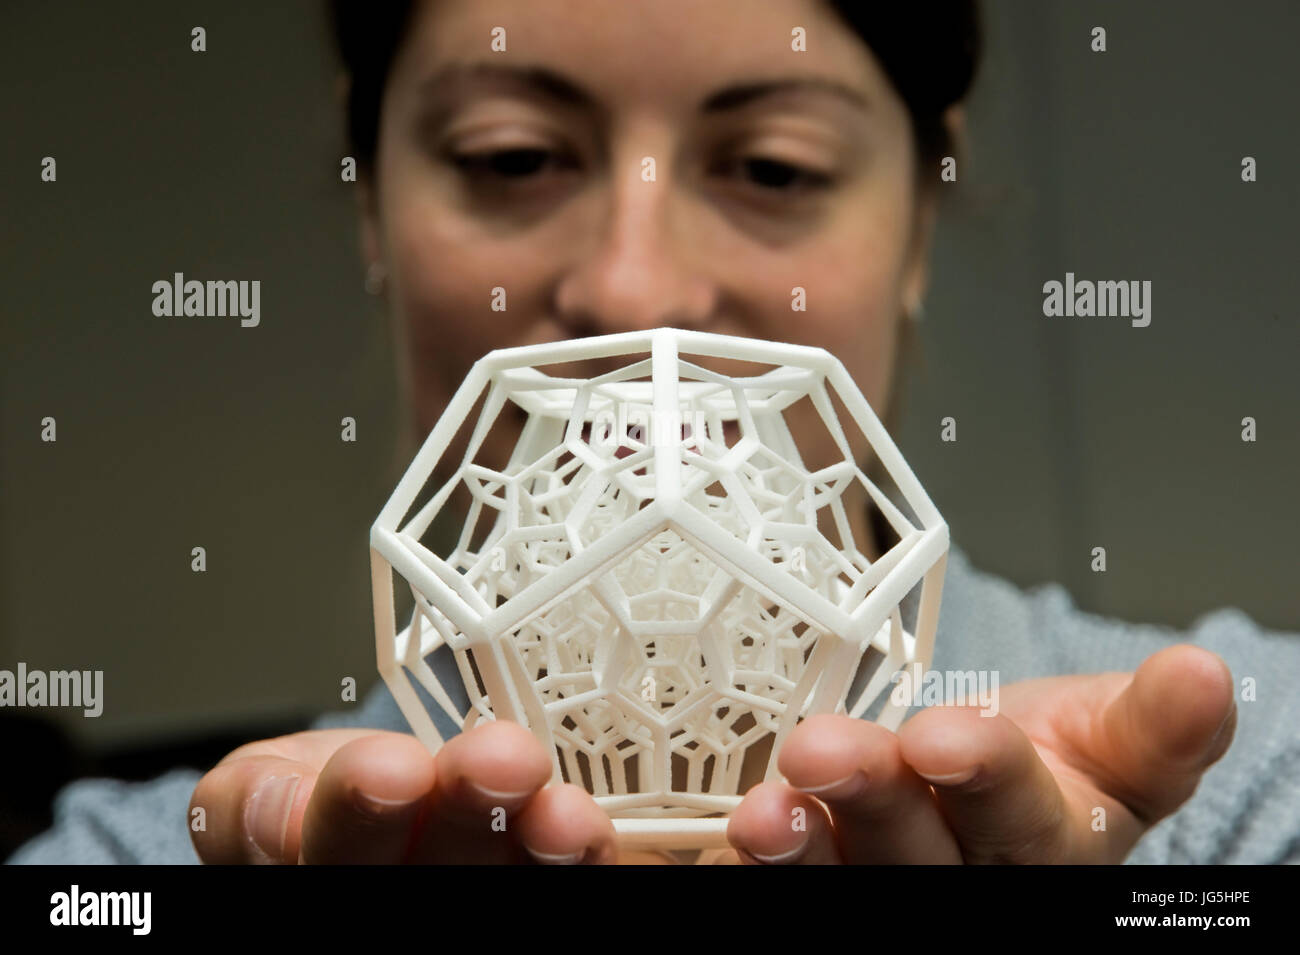 Woman holds complex 3-dimensional object produced by Selective Laser Sintering (SLS). - Stock Image